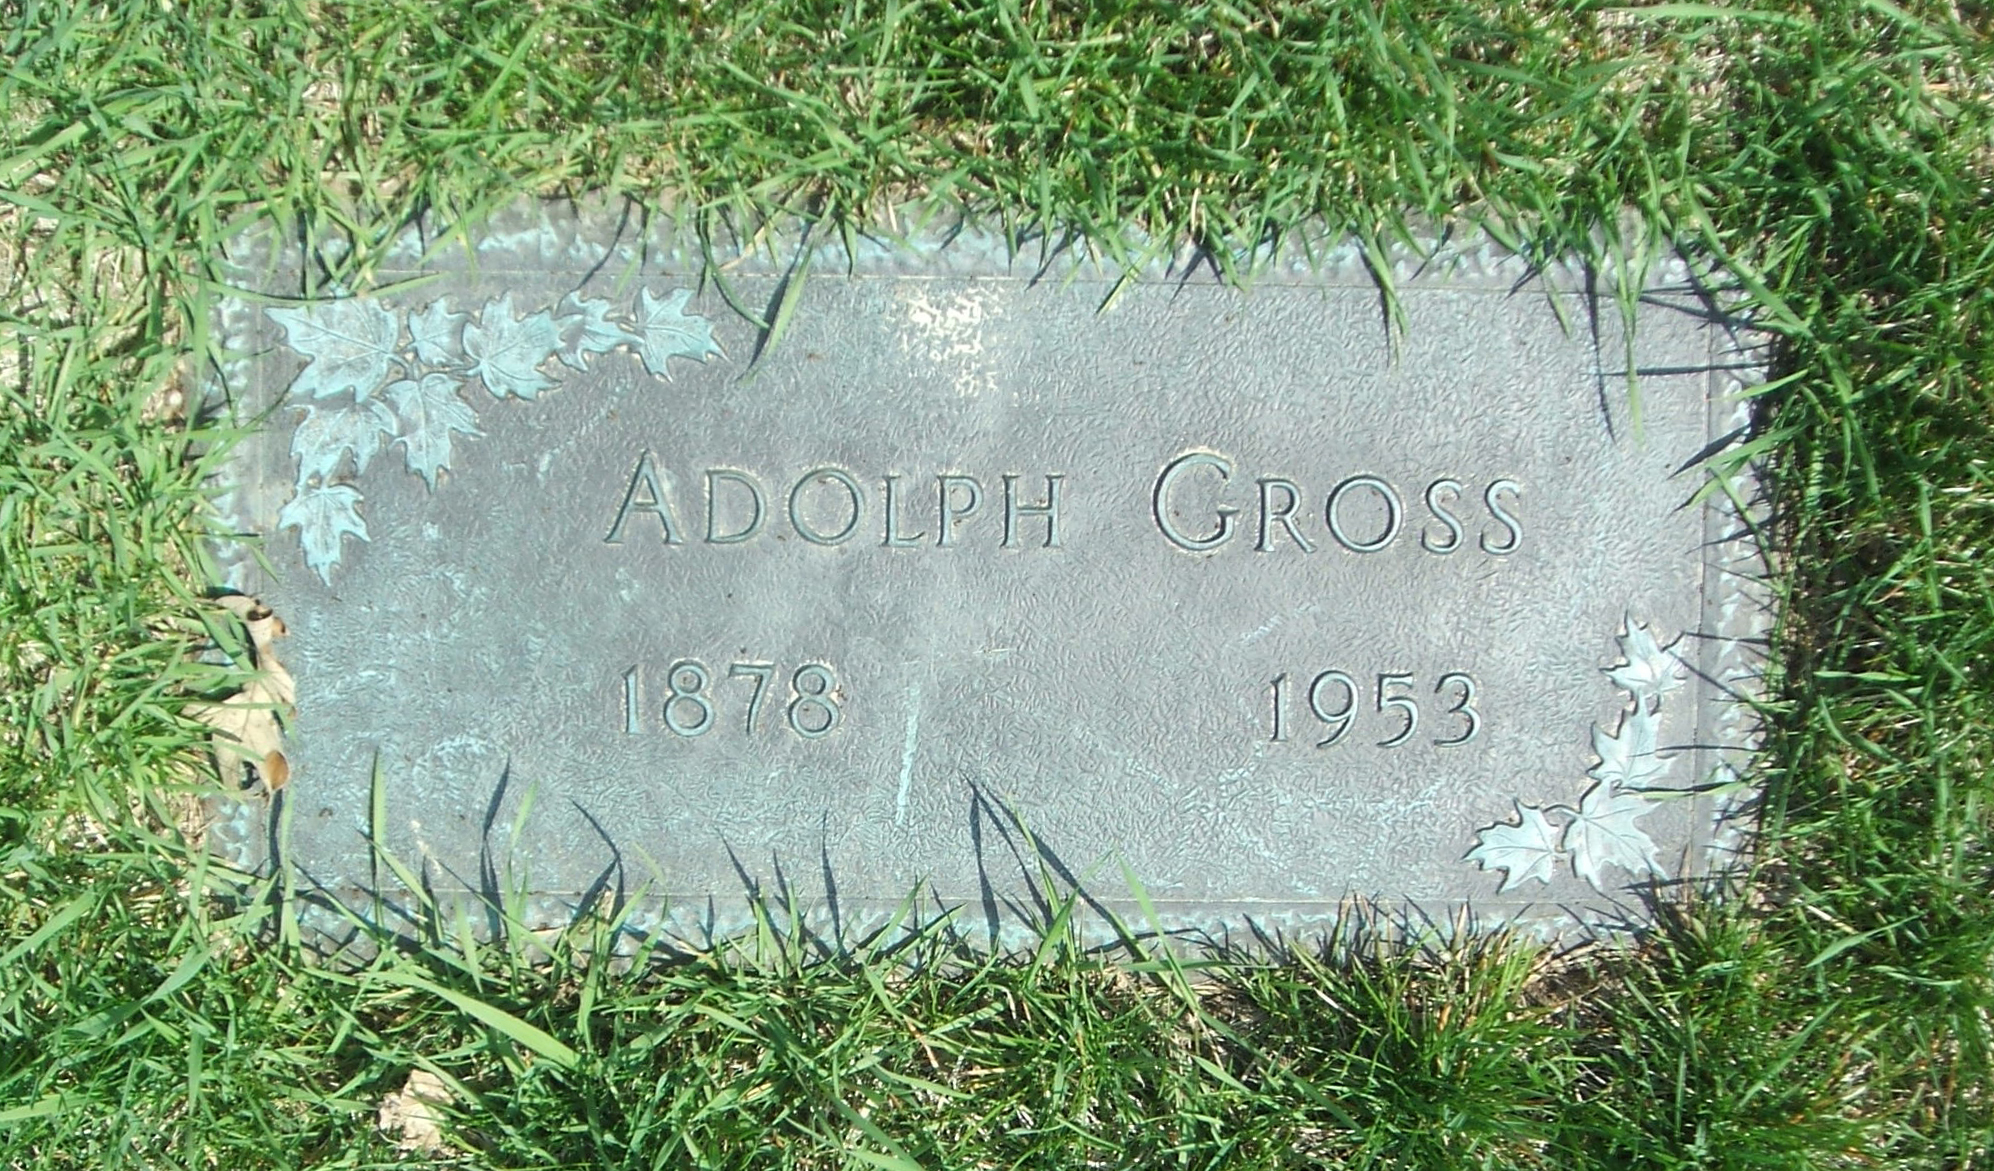 Adolph Gross